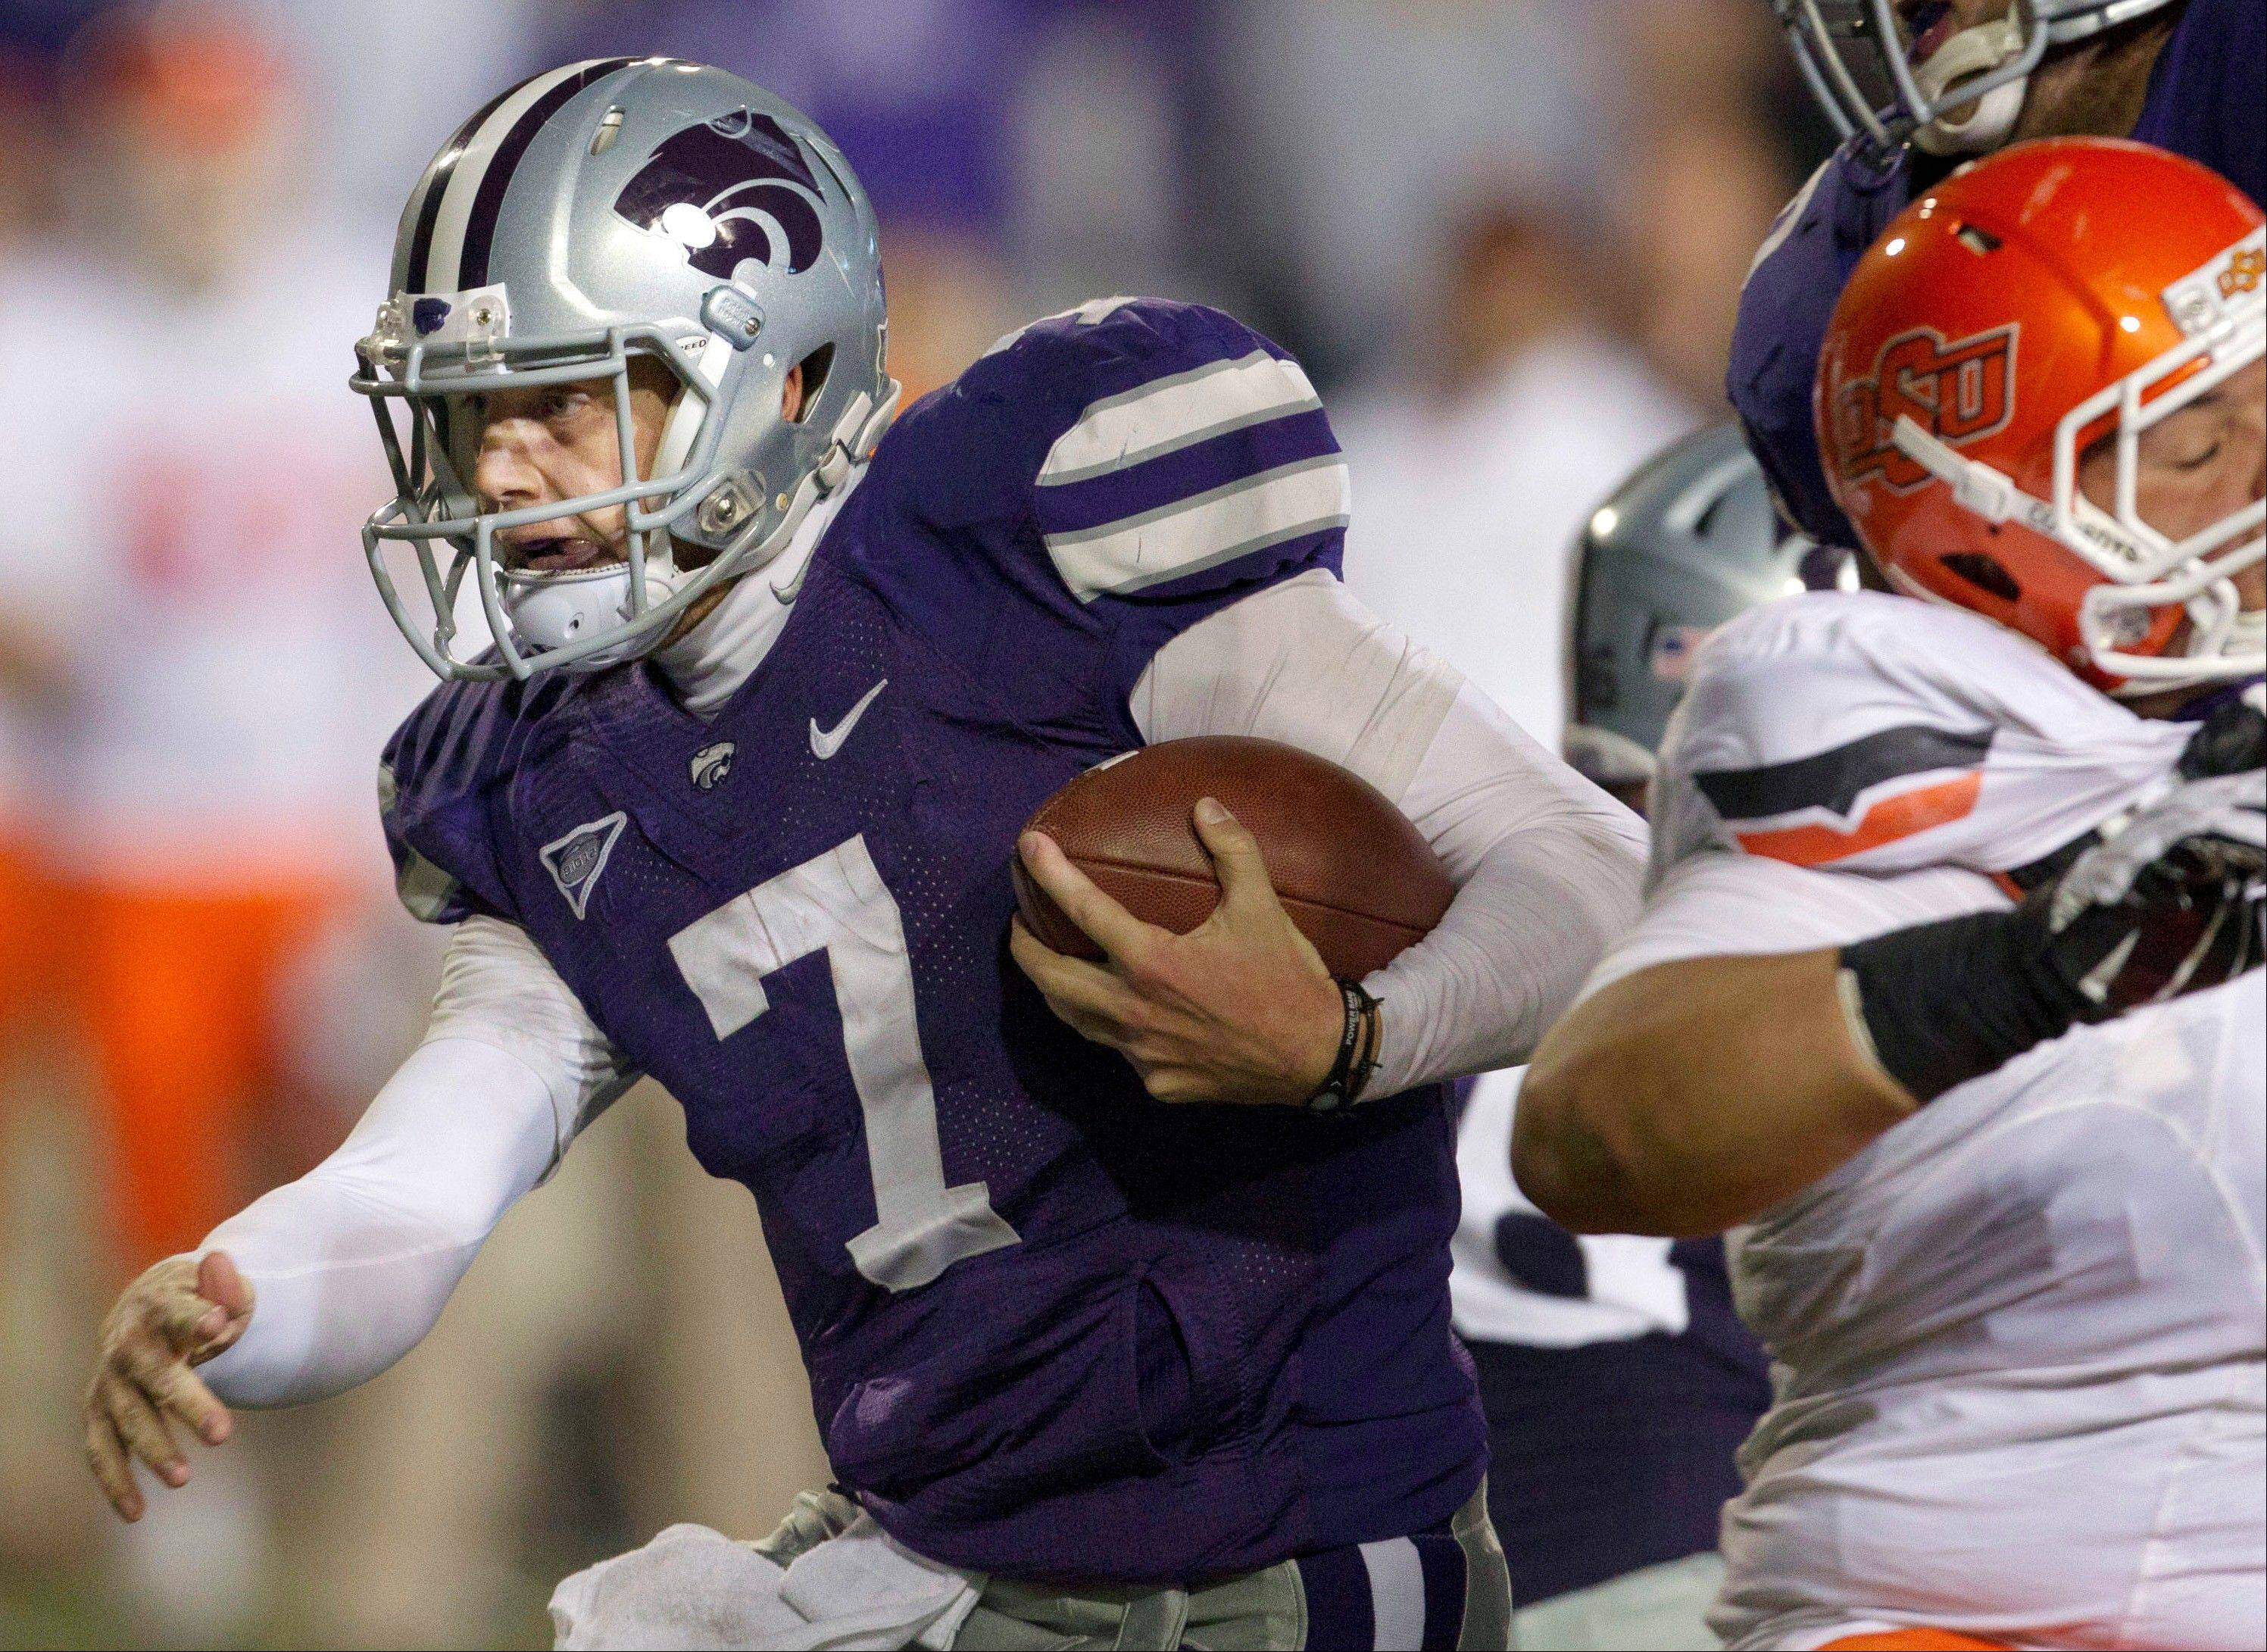 Kansas State quarterback Collin Klein runs for a first down against Oklahoma State. Once the front-runner for the award, Klein will face stiff competition from Texas A&M quarterback Johnny Manziel and Notre Dame linebacker Manti Te�o when the Heisman is given out Saturday night in New York City.